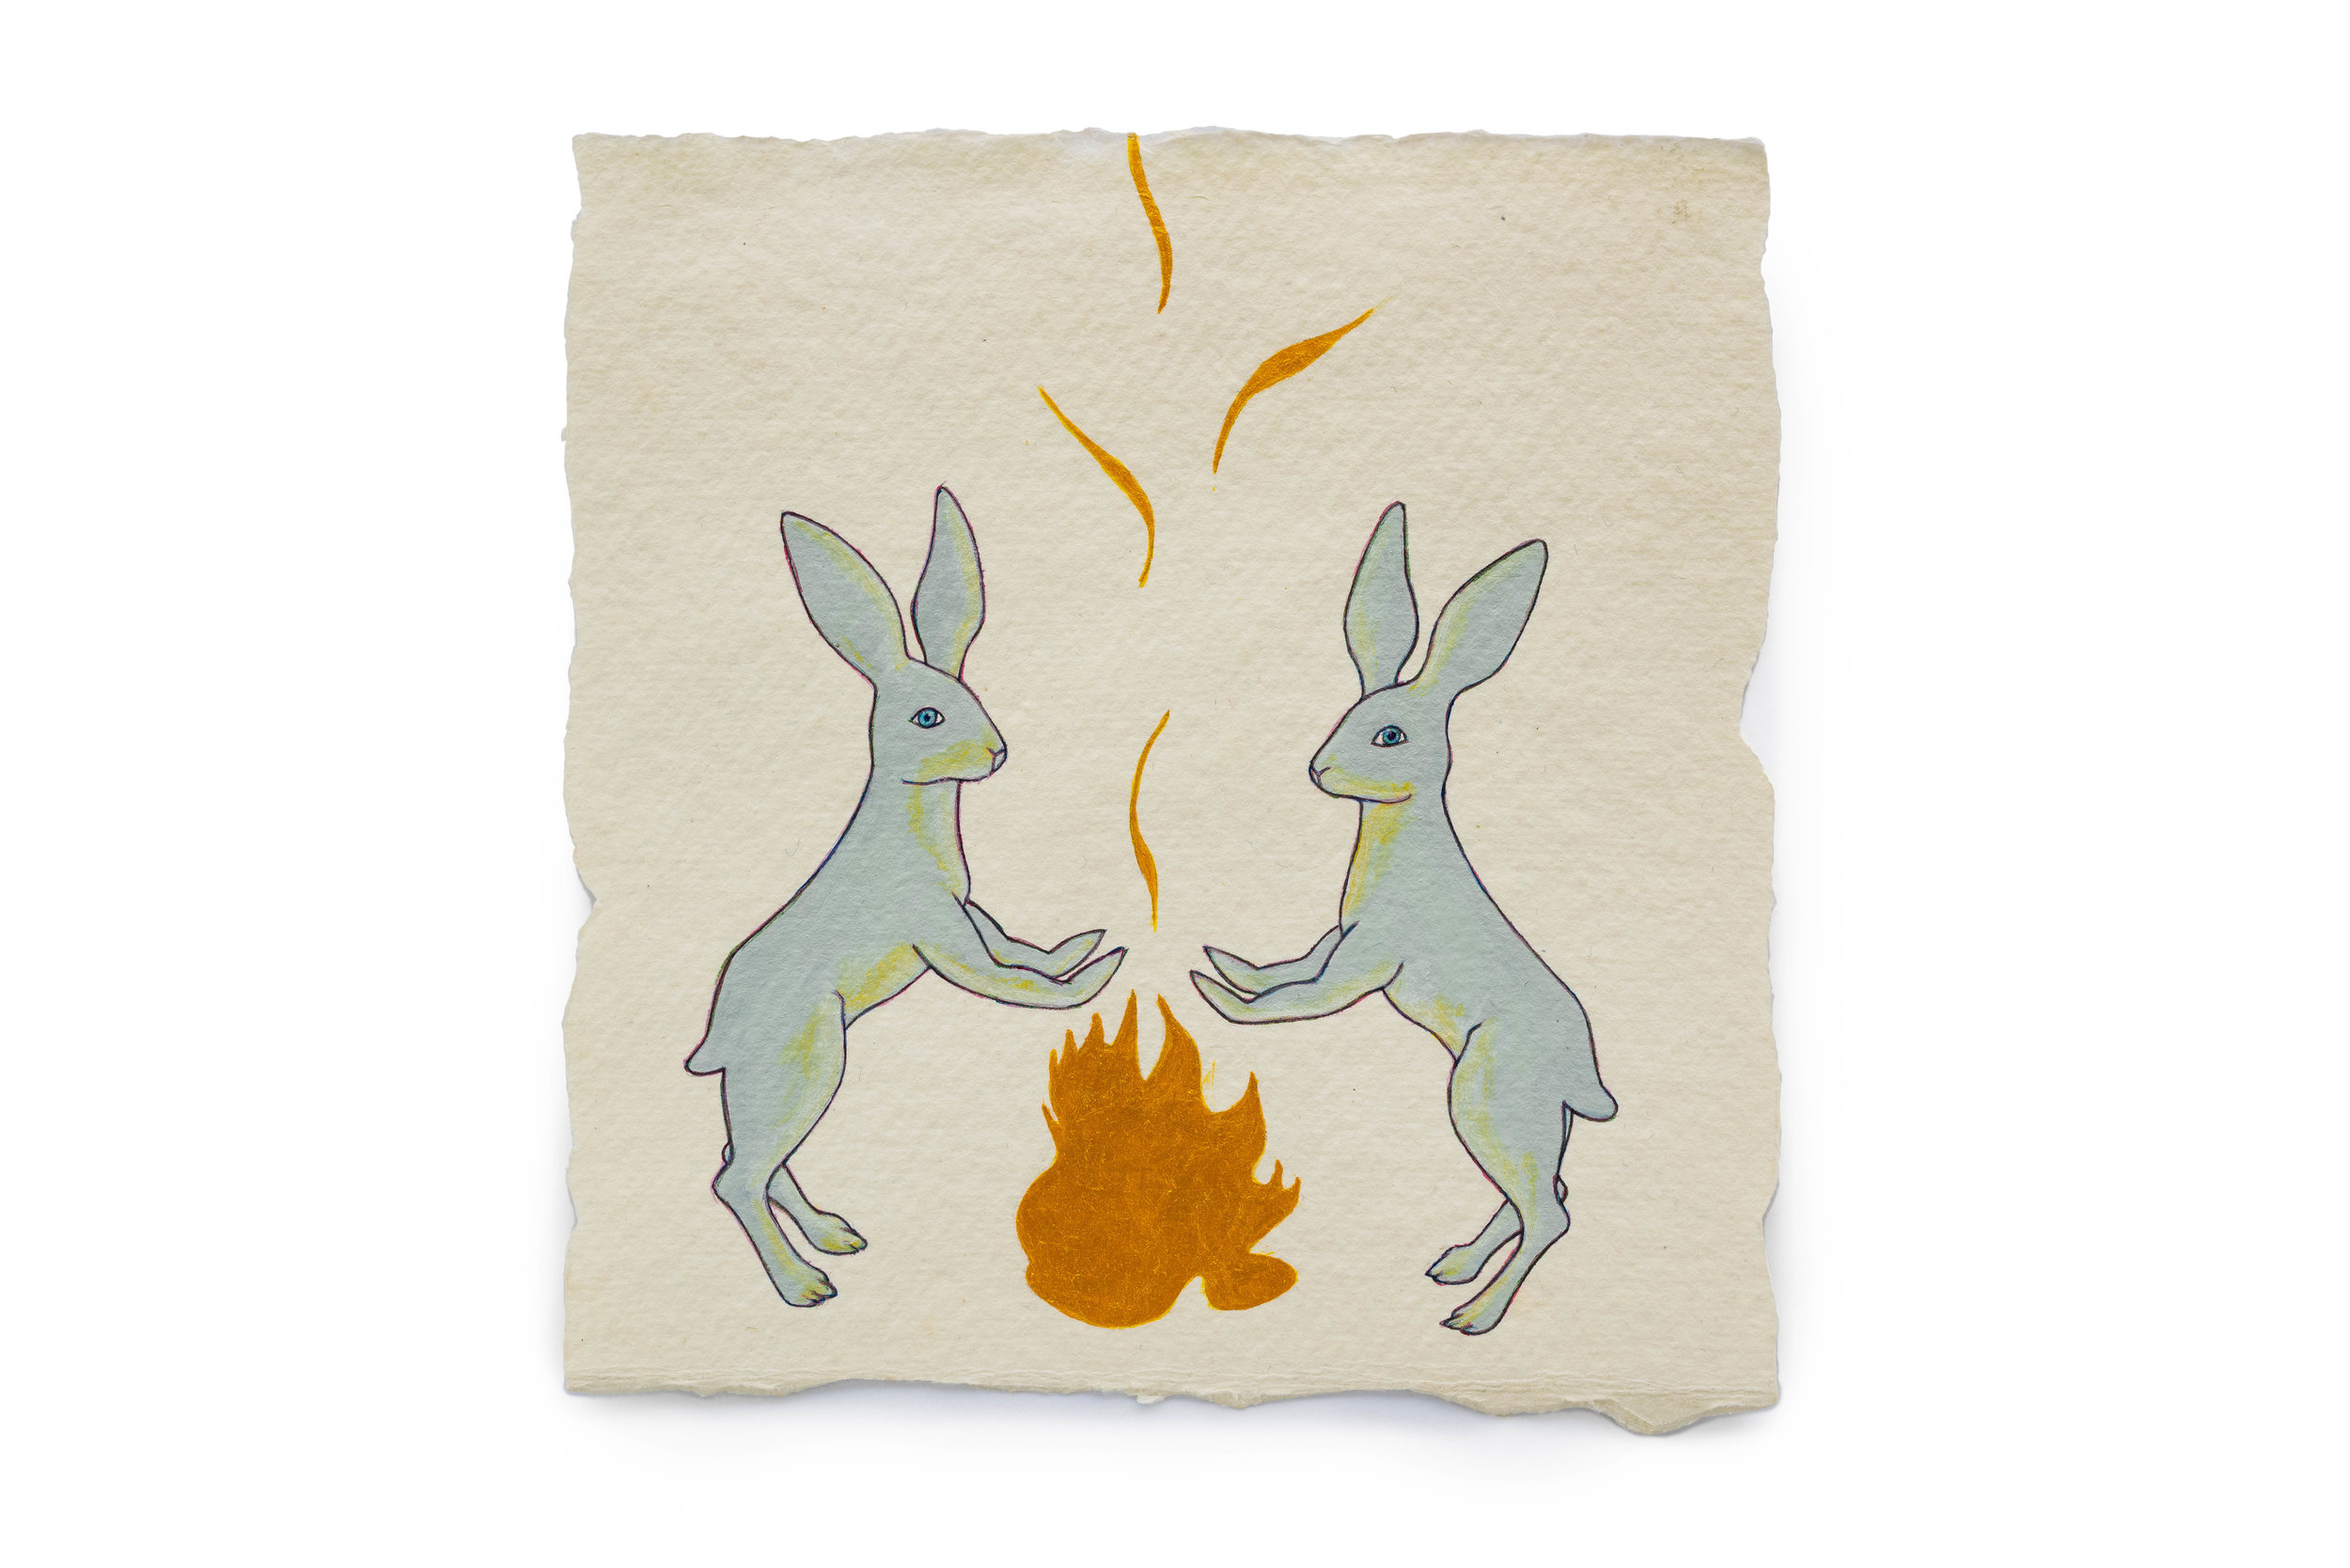 "Fire Diary (Flaming Rabbits),  2018 Acrylic on paper, 6"" x 6"" each"